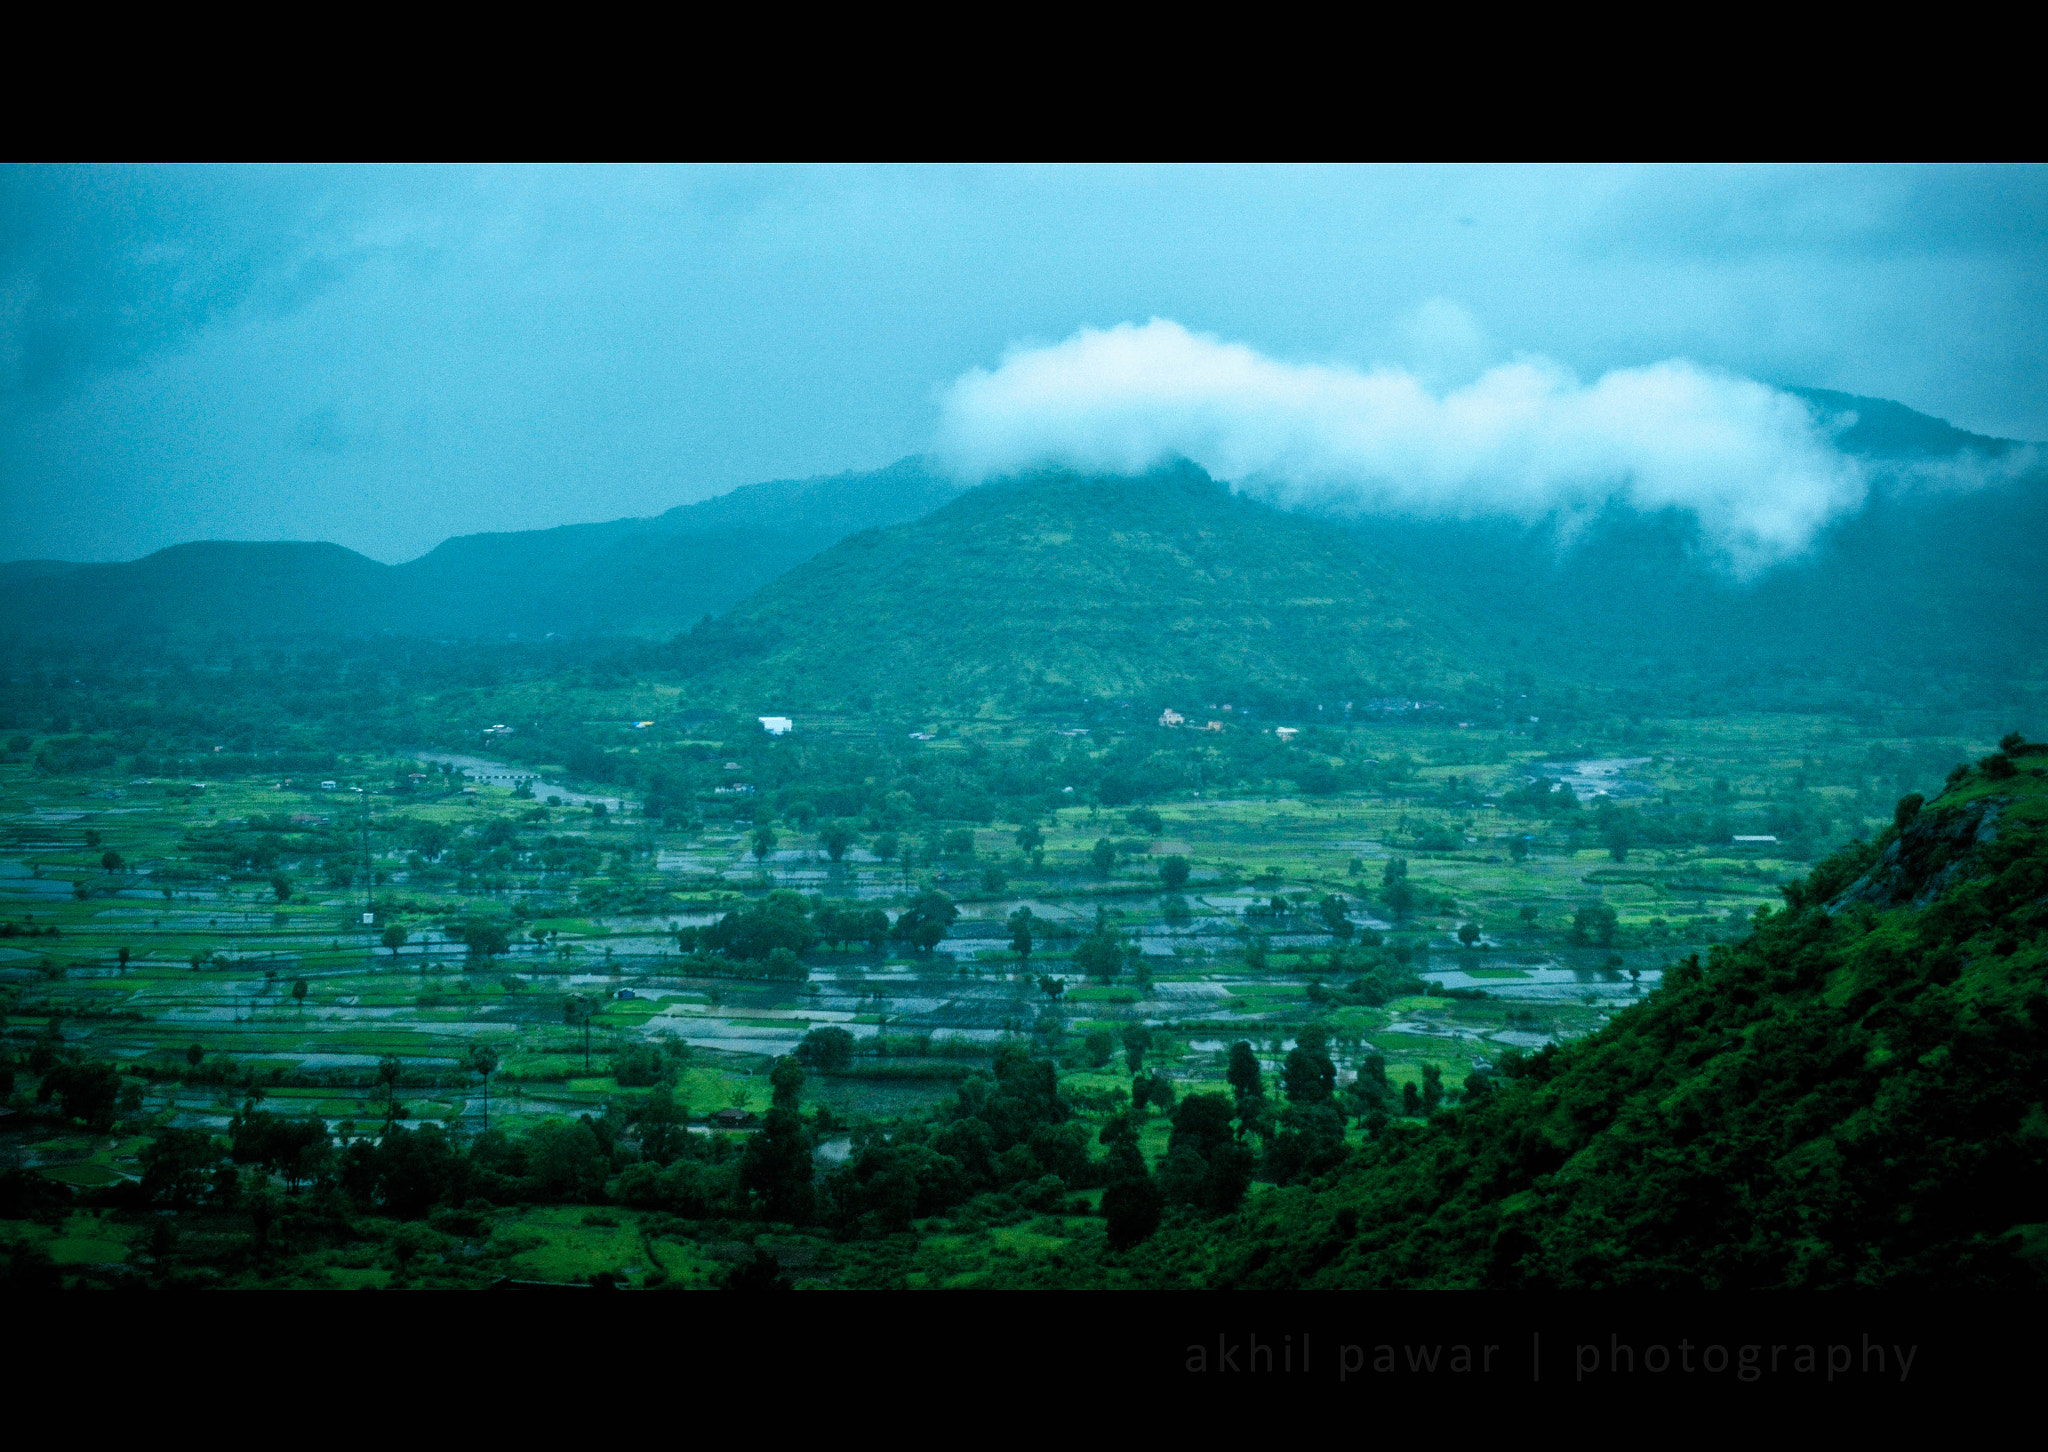 Photograph Open Skies by Akhil Pawar on 500px